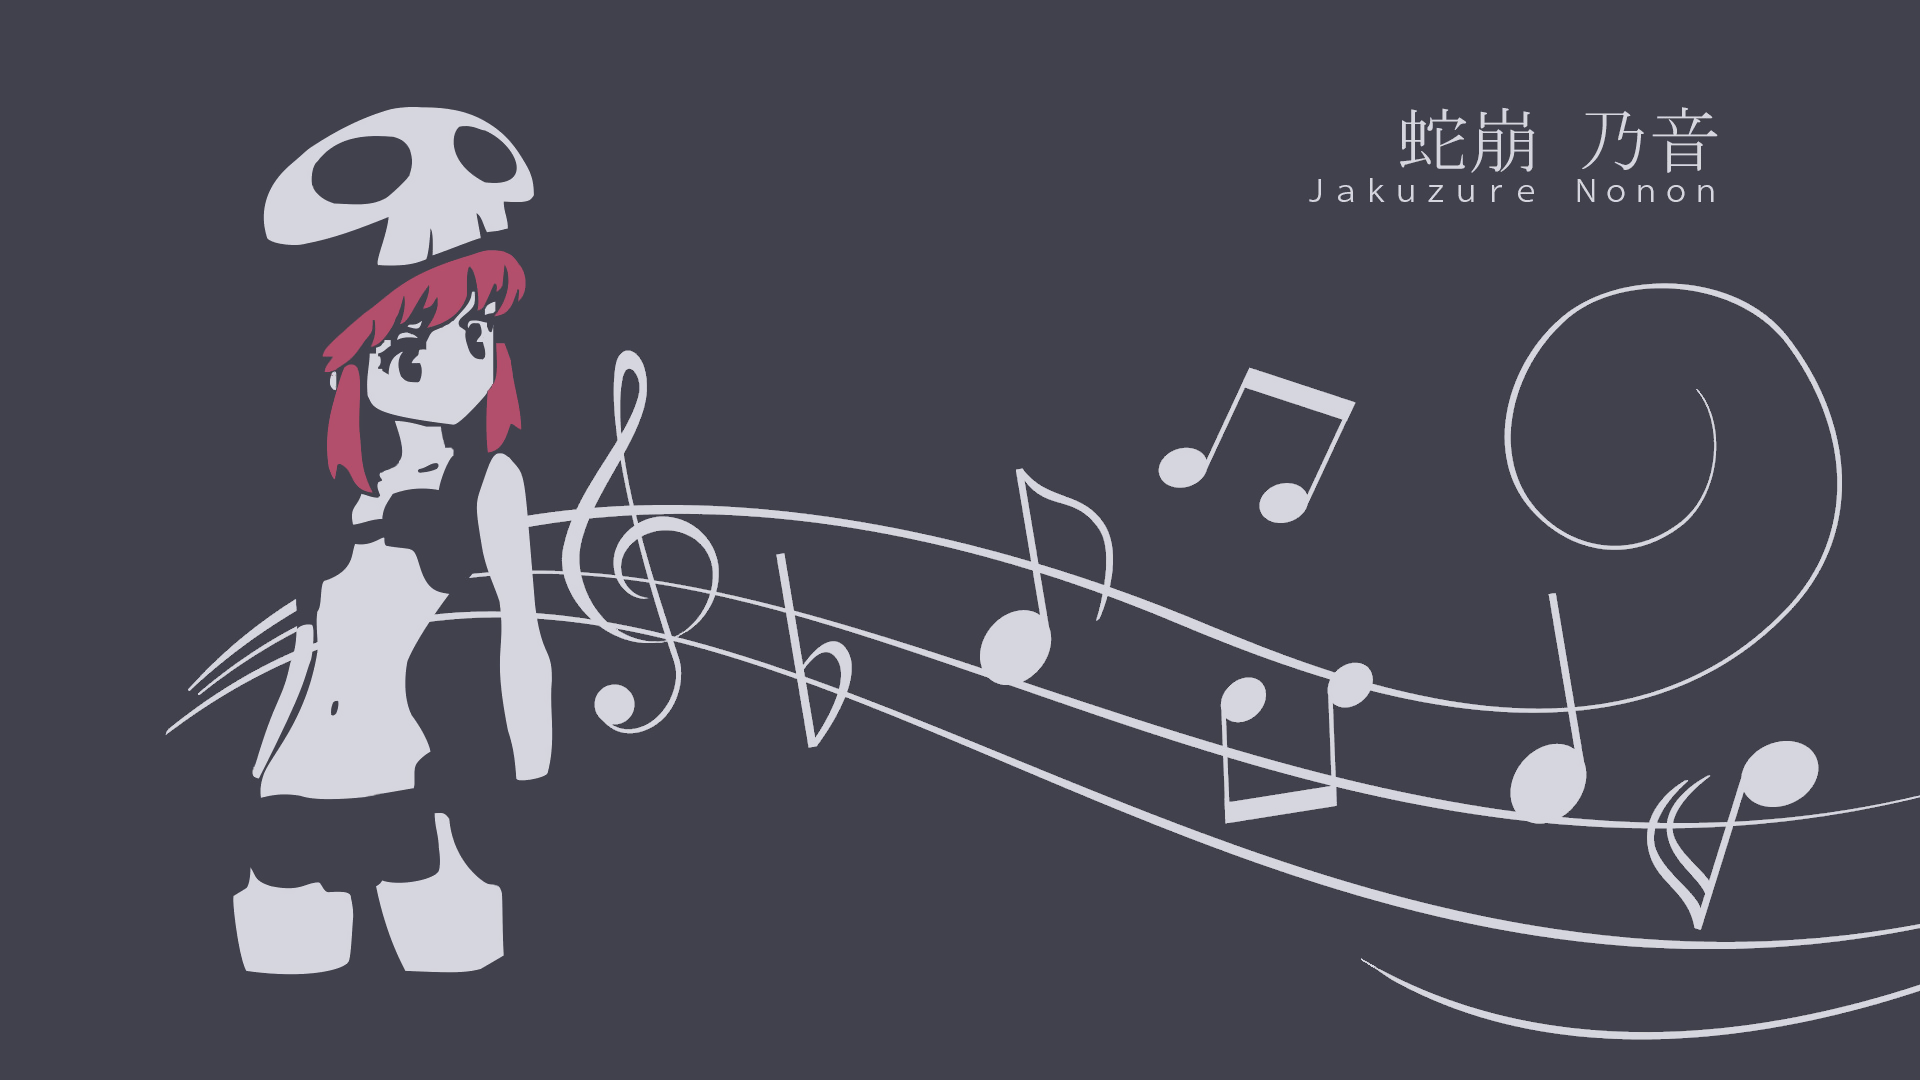 Spoilers I Couldn T Sleep Last Night So I Made This Wallpaper Of Nonon Jakuzure From Yesterday S Episode Of Kill La Kill Thanks To U D4k L1gh7 For Touch Ups Anime